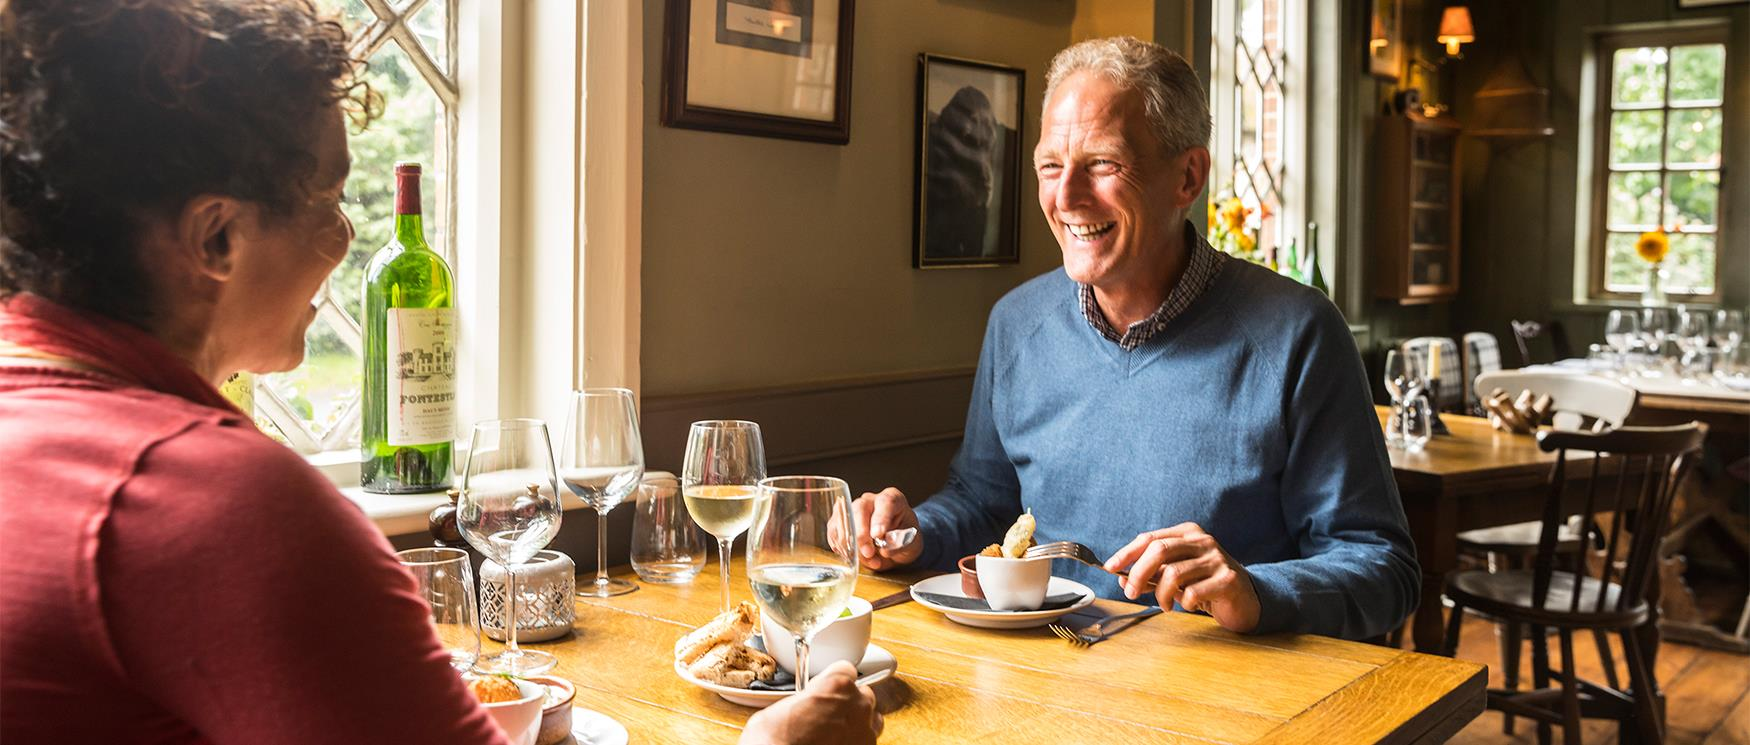 Couple Dining in Country Pub